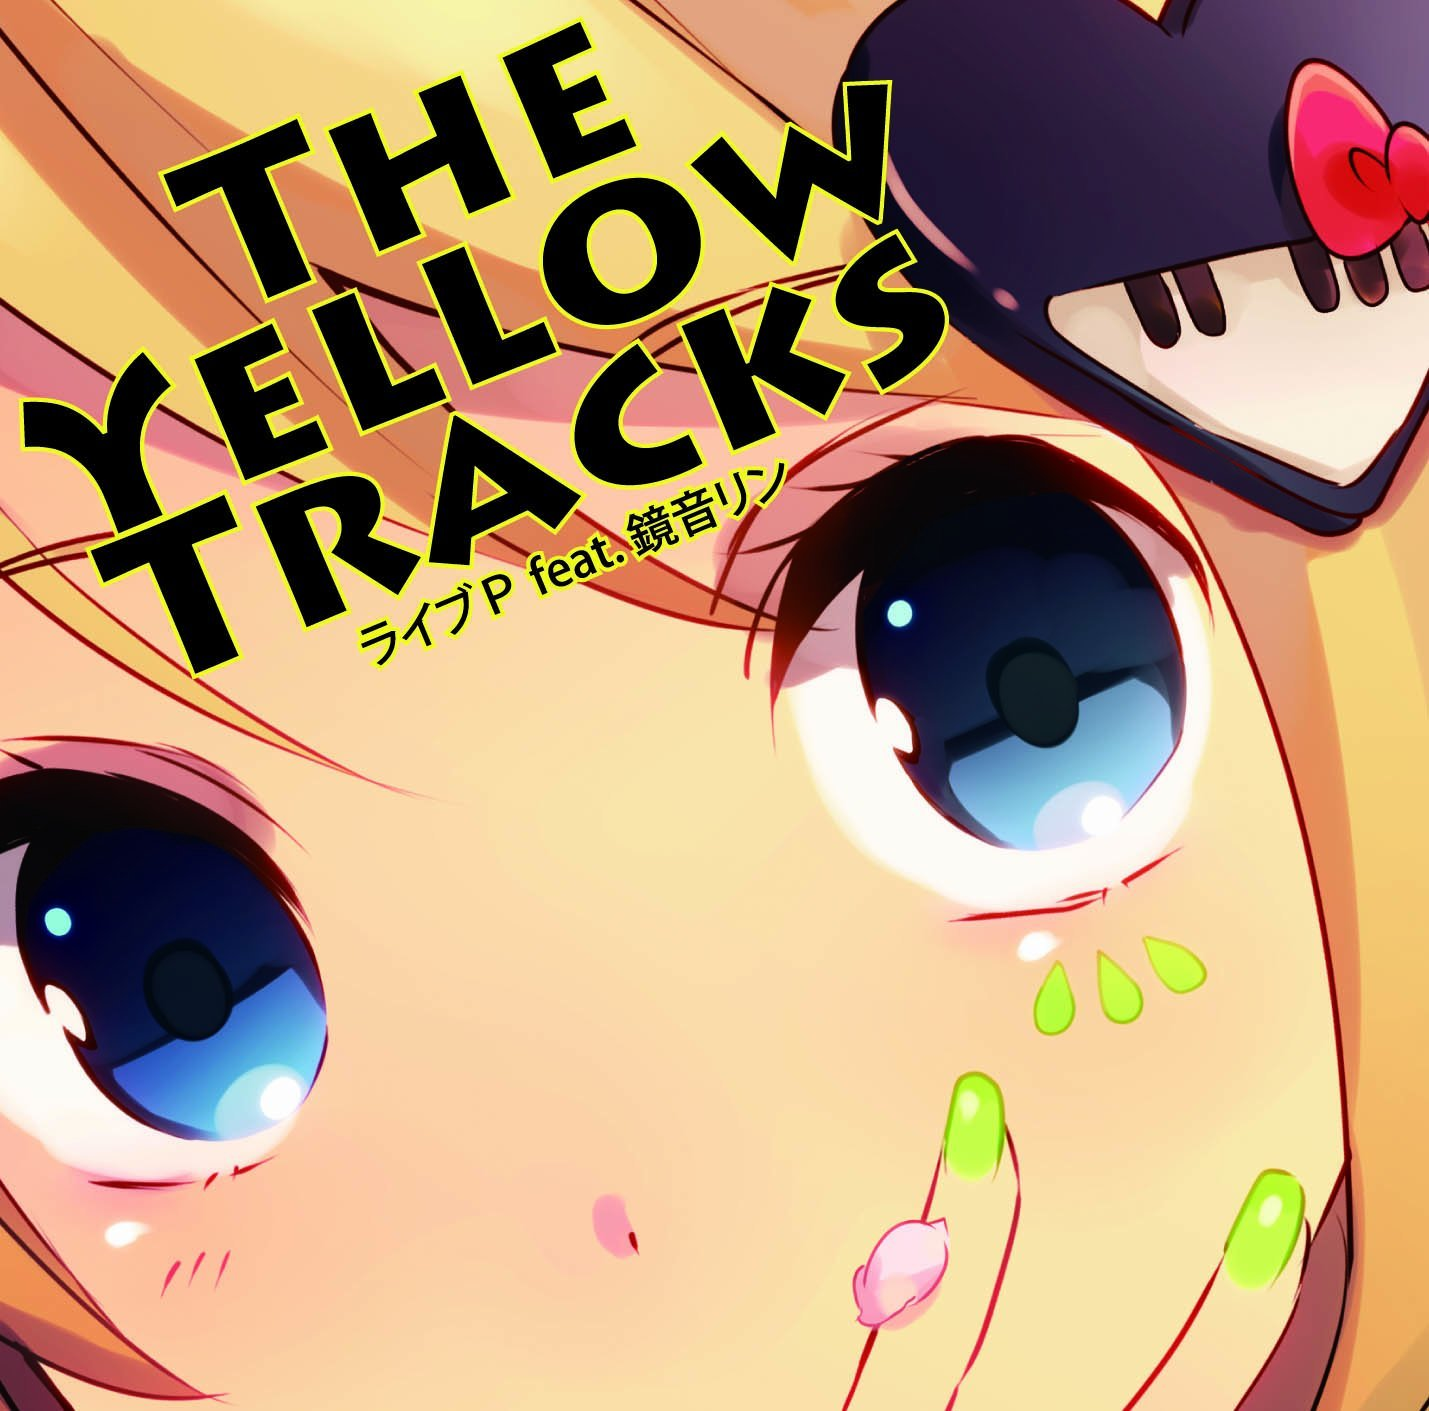 THE YELLOW TRACKS